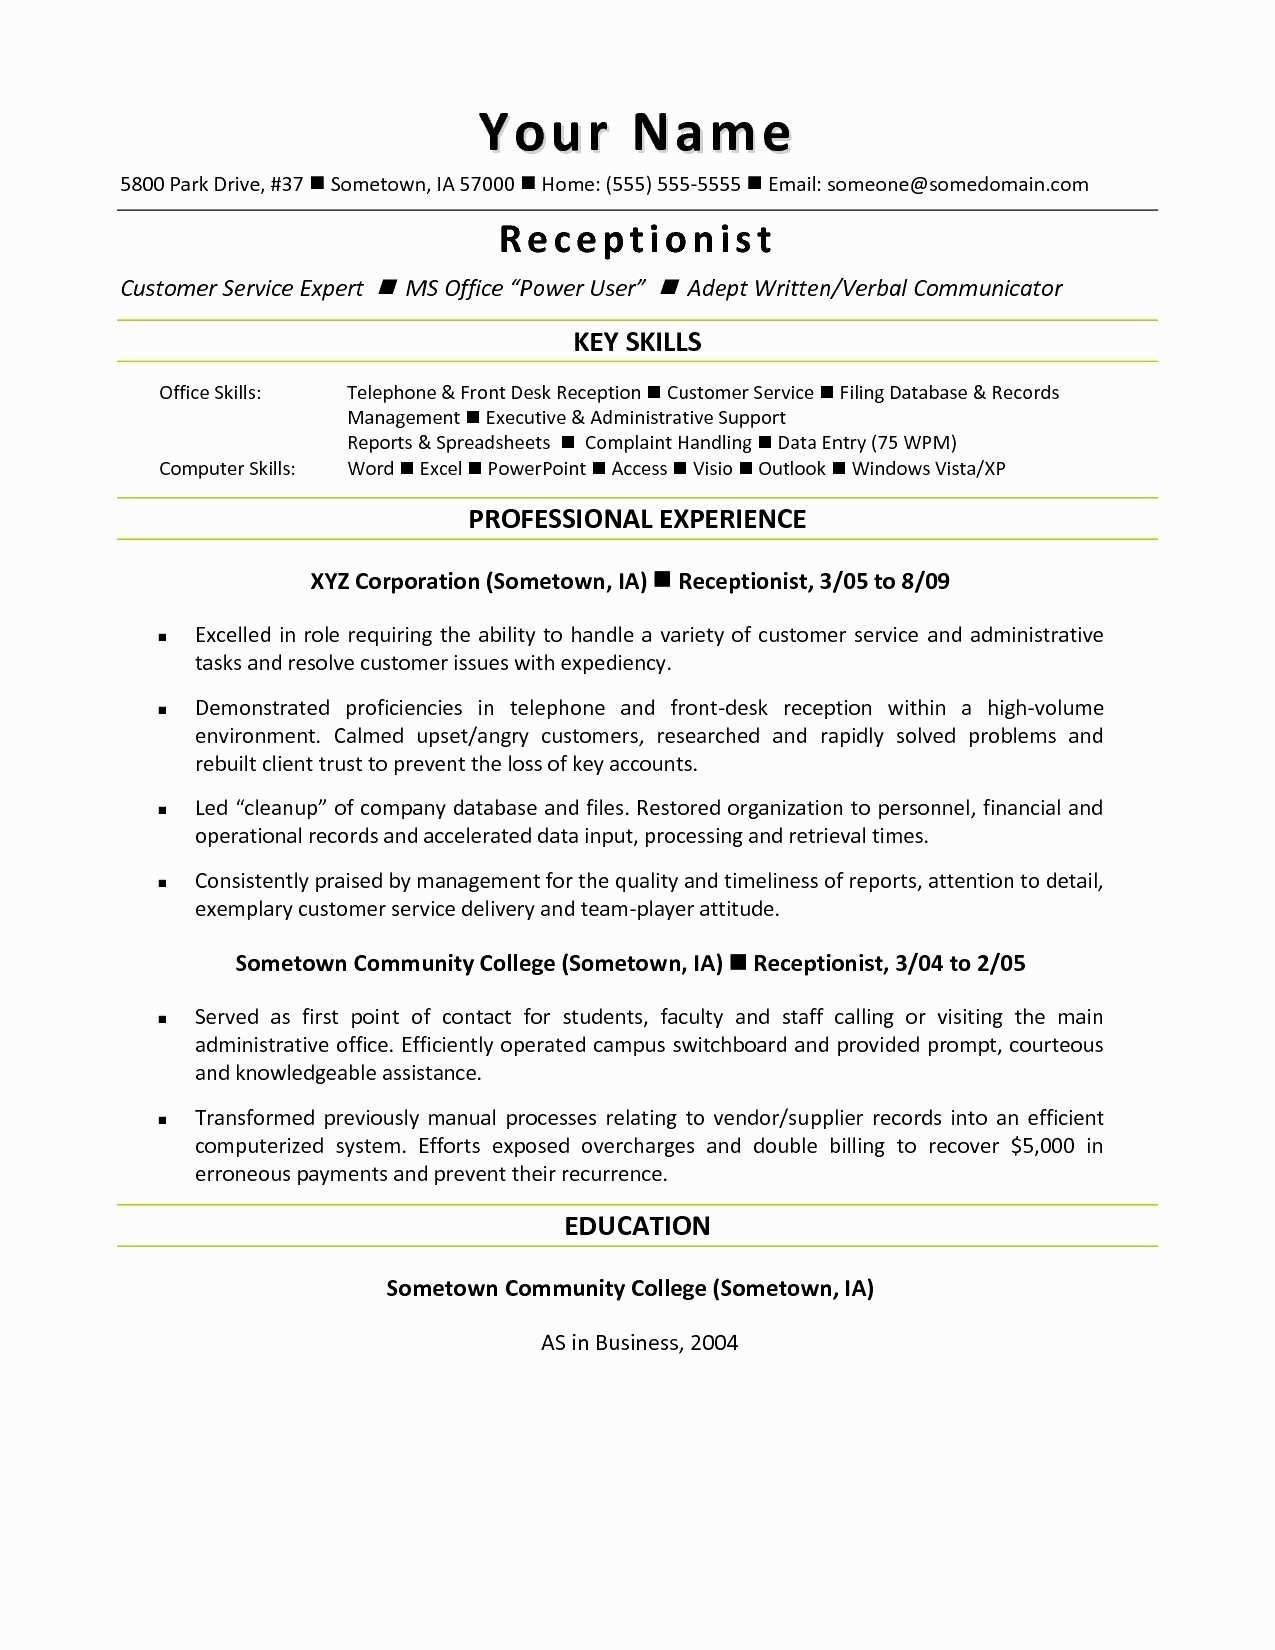 After School Counselor Resume - 16 School Counselor Resume